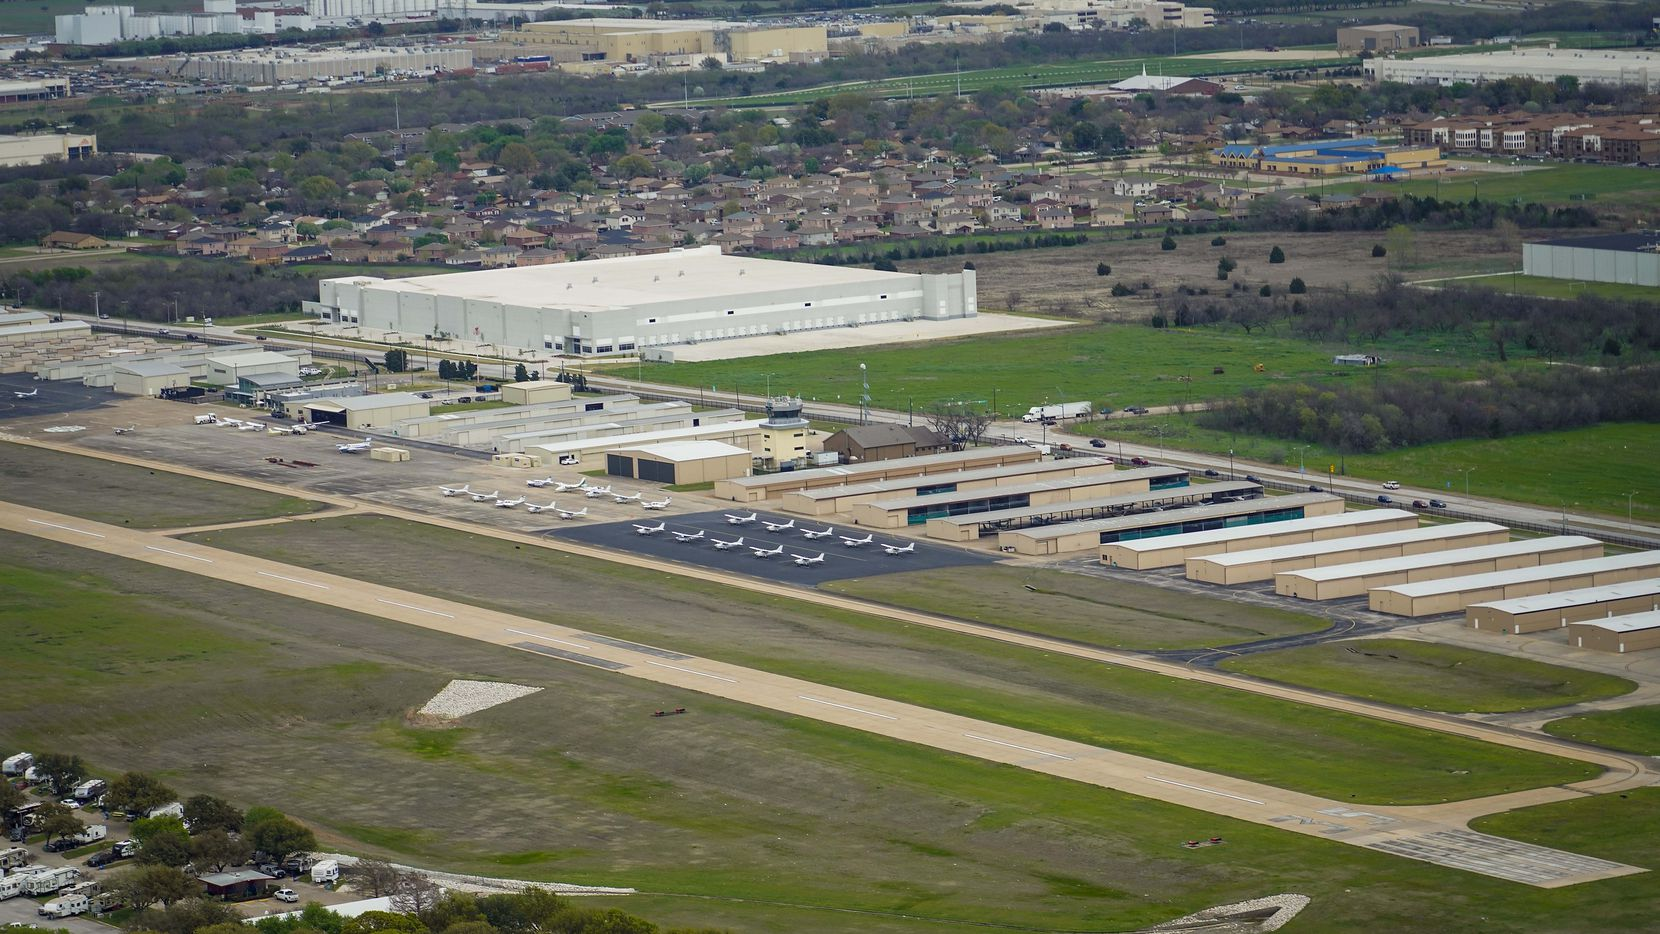 An aerial view of Grand Prairie Municipal Airport, which will host a vehicle show to raise money for charity this weekend.